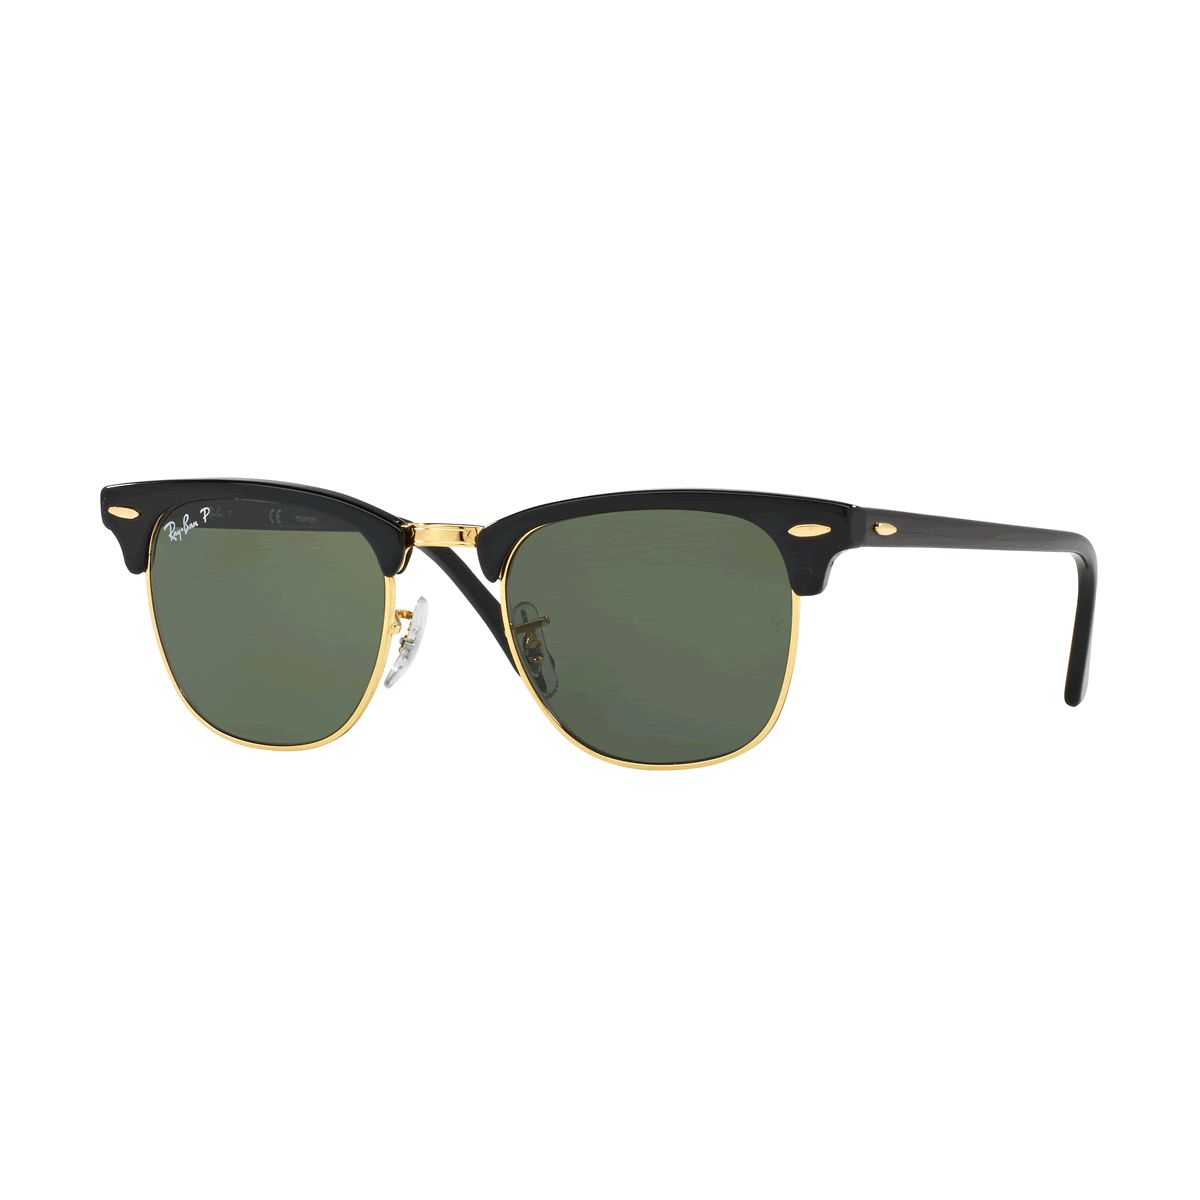 ad0ffc1120 Ray-Ban Sunglasses - Mens   Womens Ray-Bans - Macy s